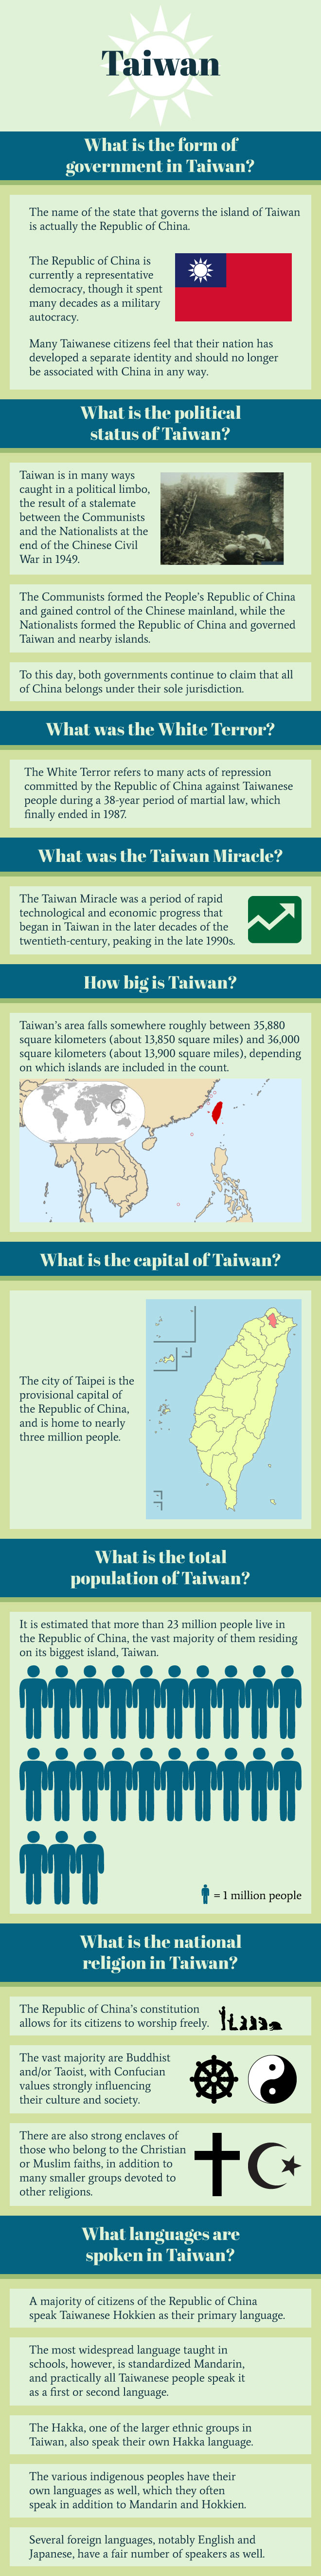 Infographic of Taiwan Facts